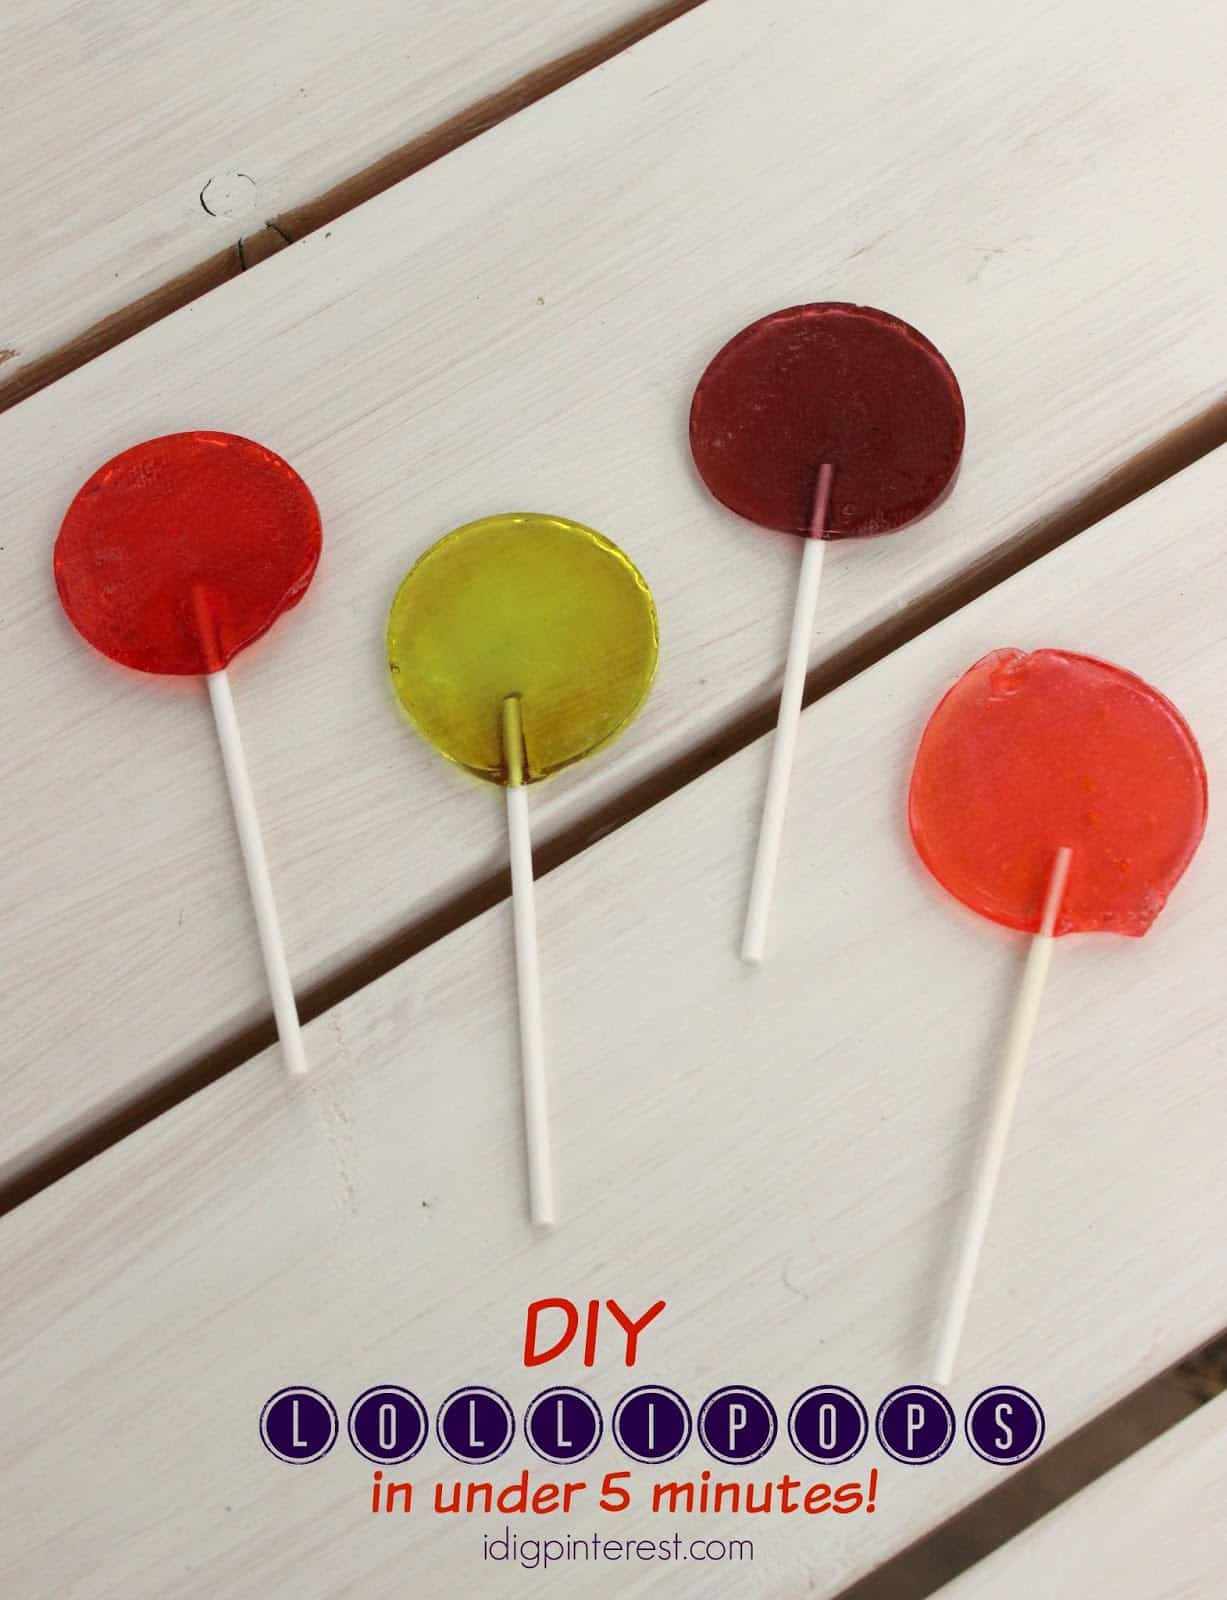 Lollipops in less than 5 minutes